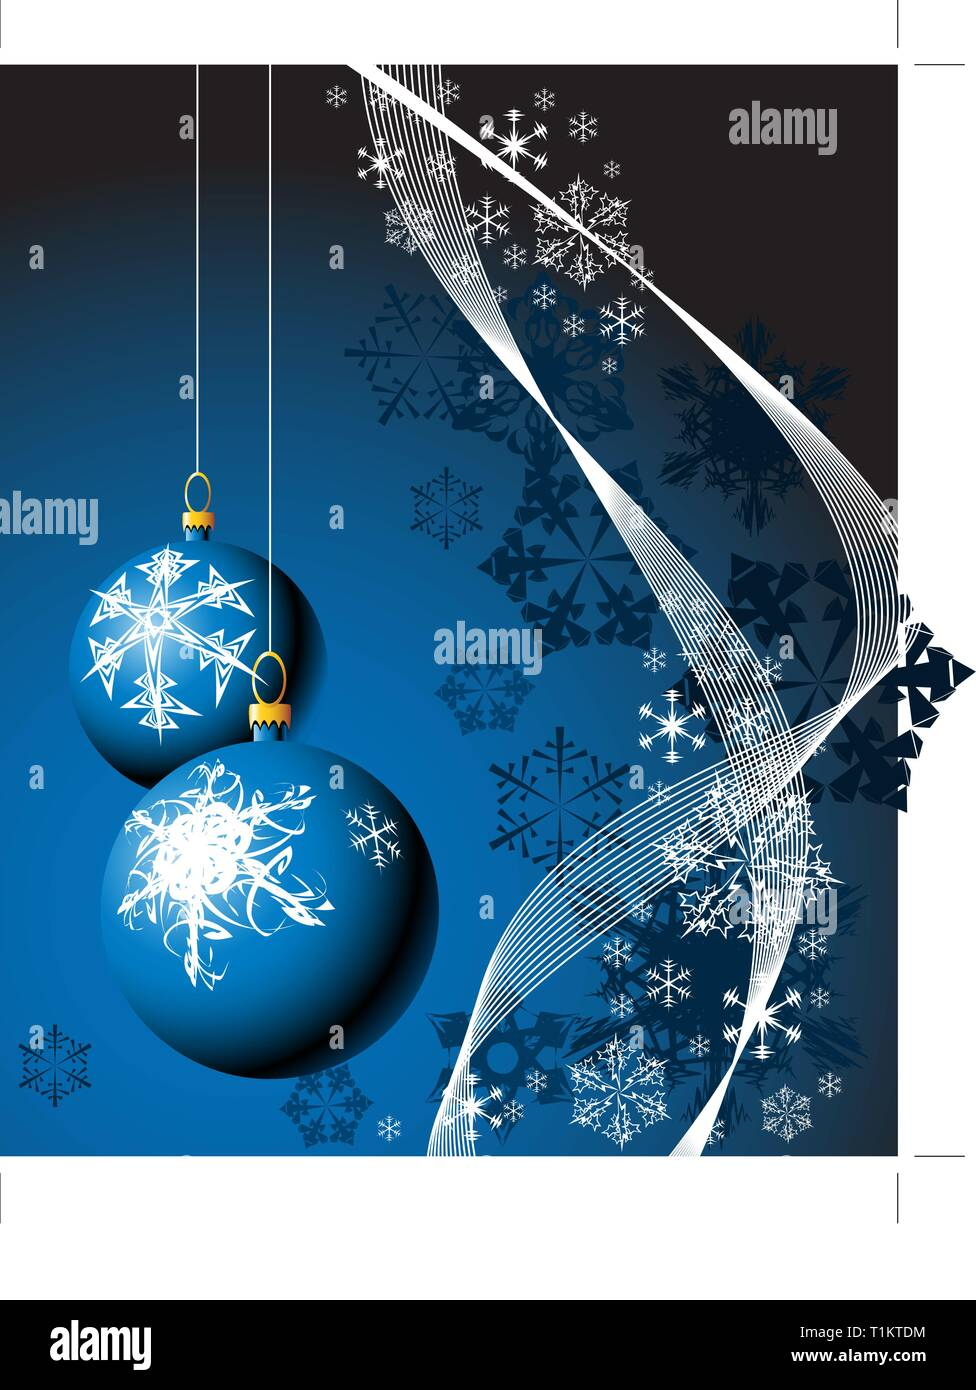 Christmas bulbs with snowflakes on blue background - Stock Vector